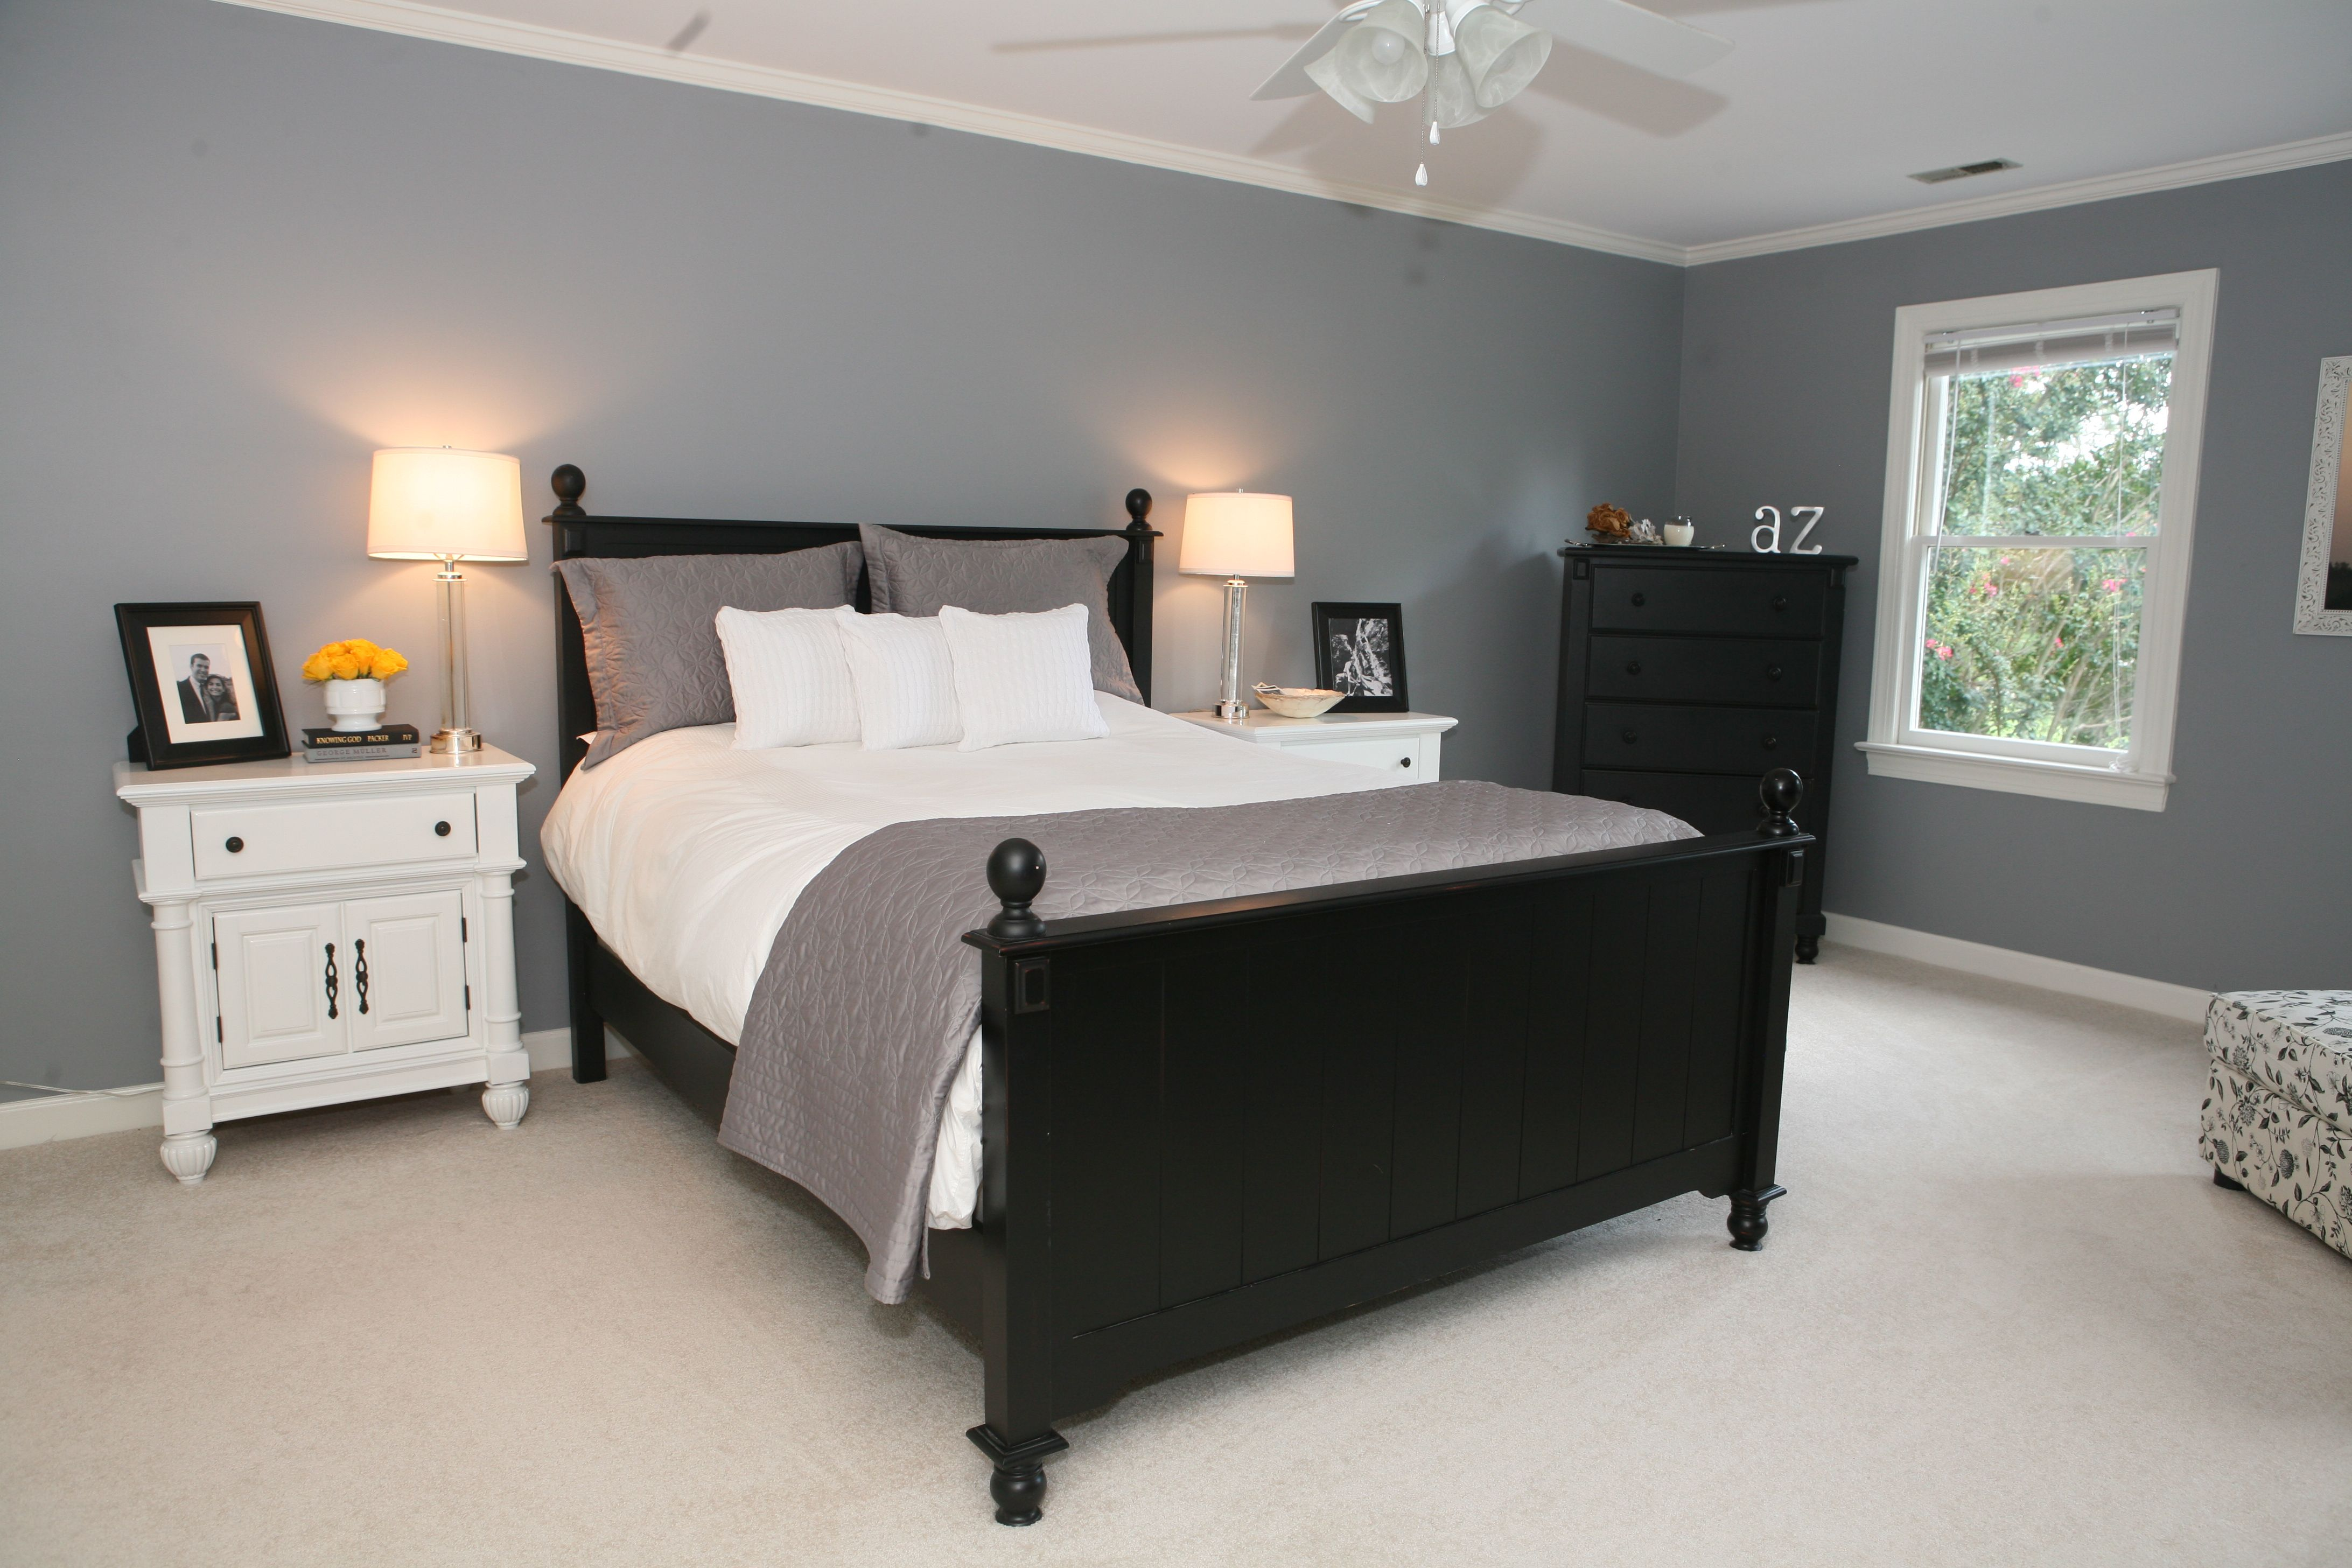 Sherwin williams knitting needles google search - Average price to paint a bedroom ...